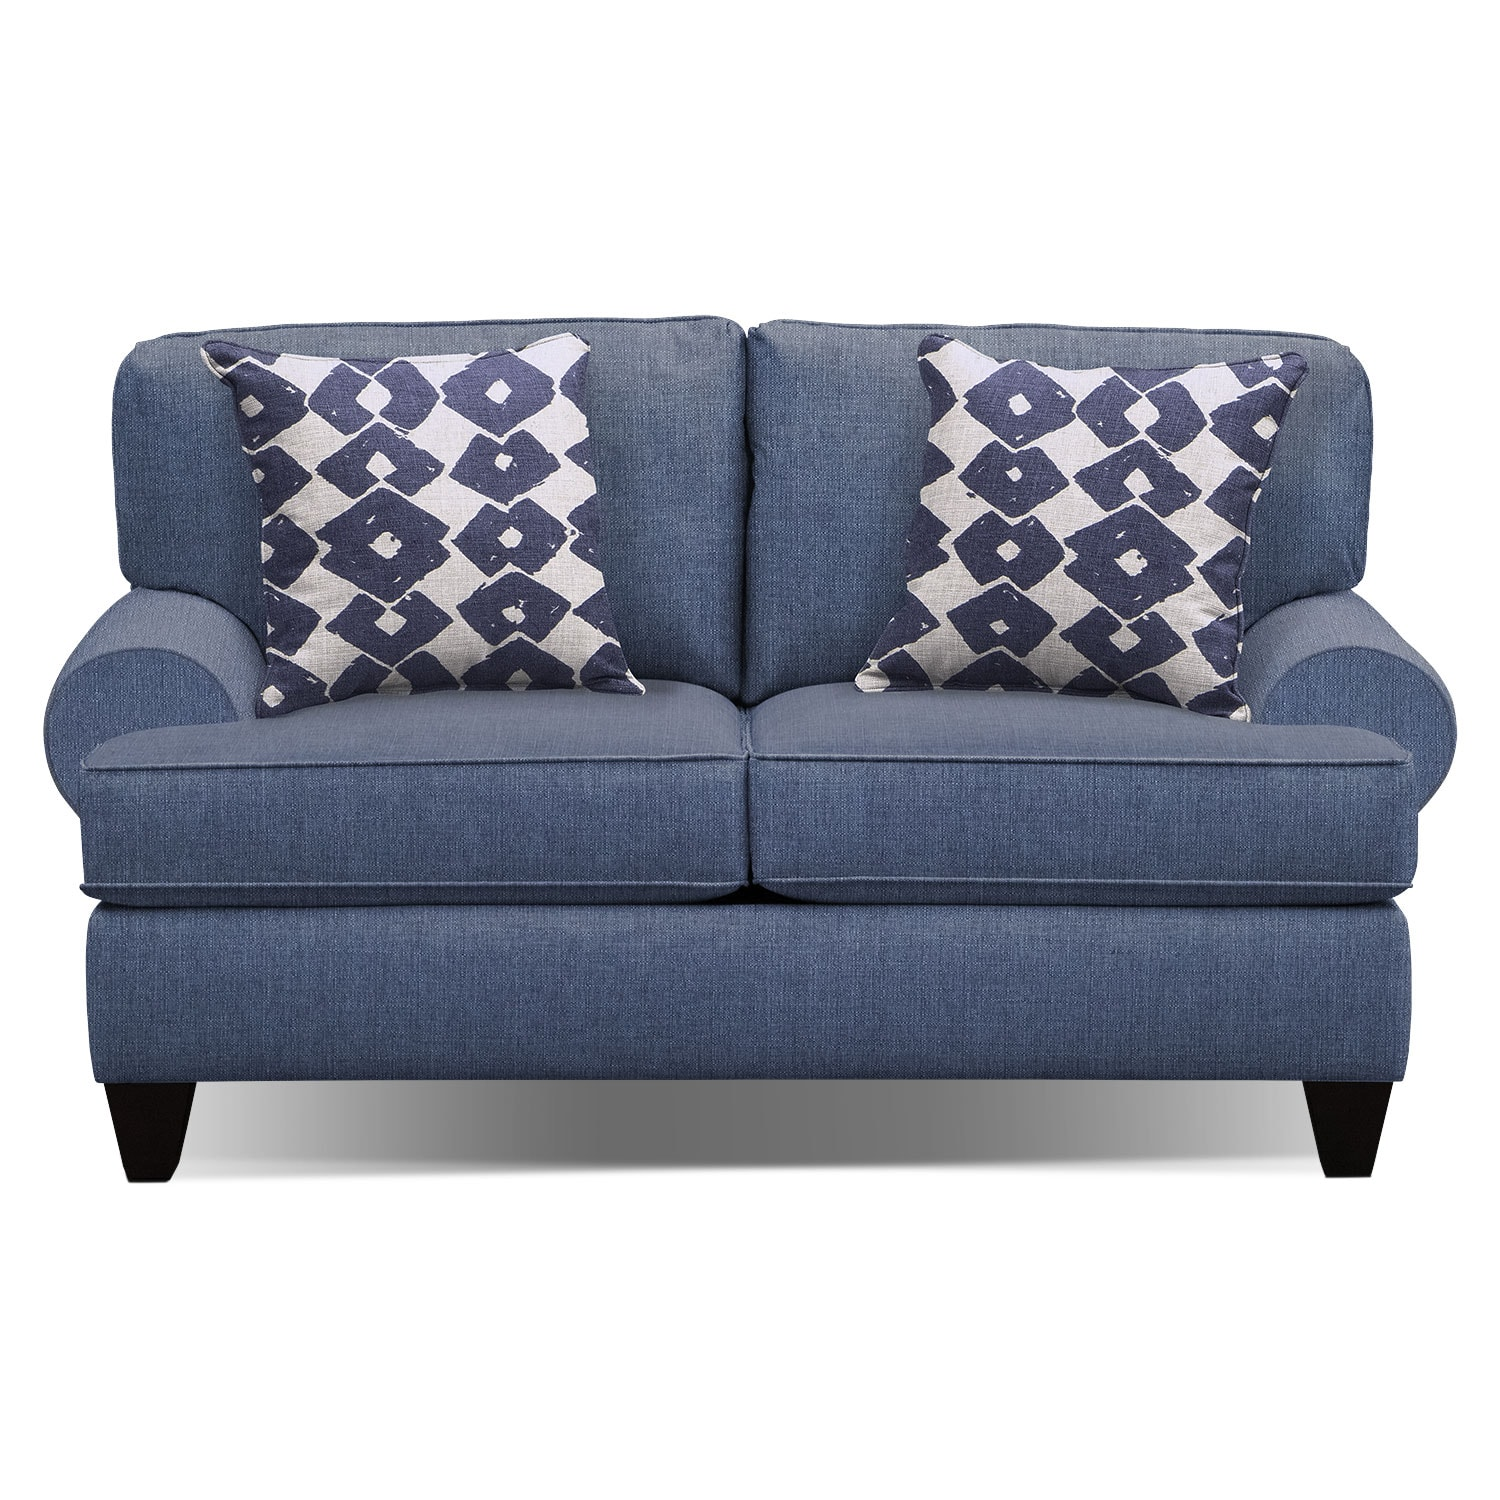 Living Room Furniture - Bailey Blue Twin Sleeper Sofa